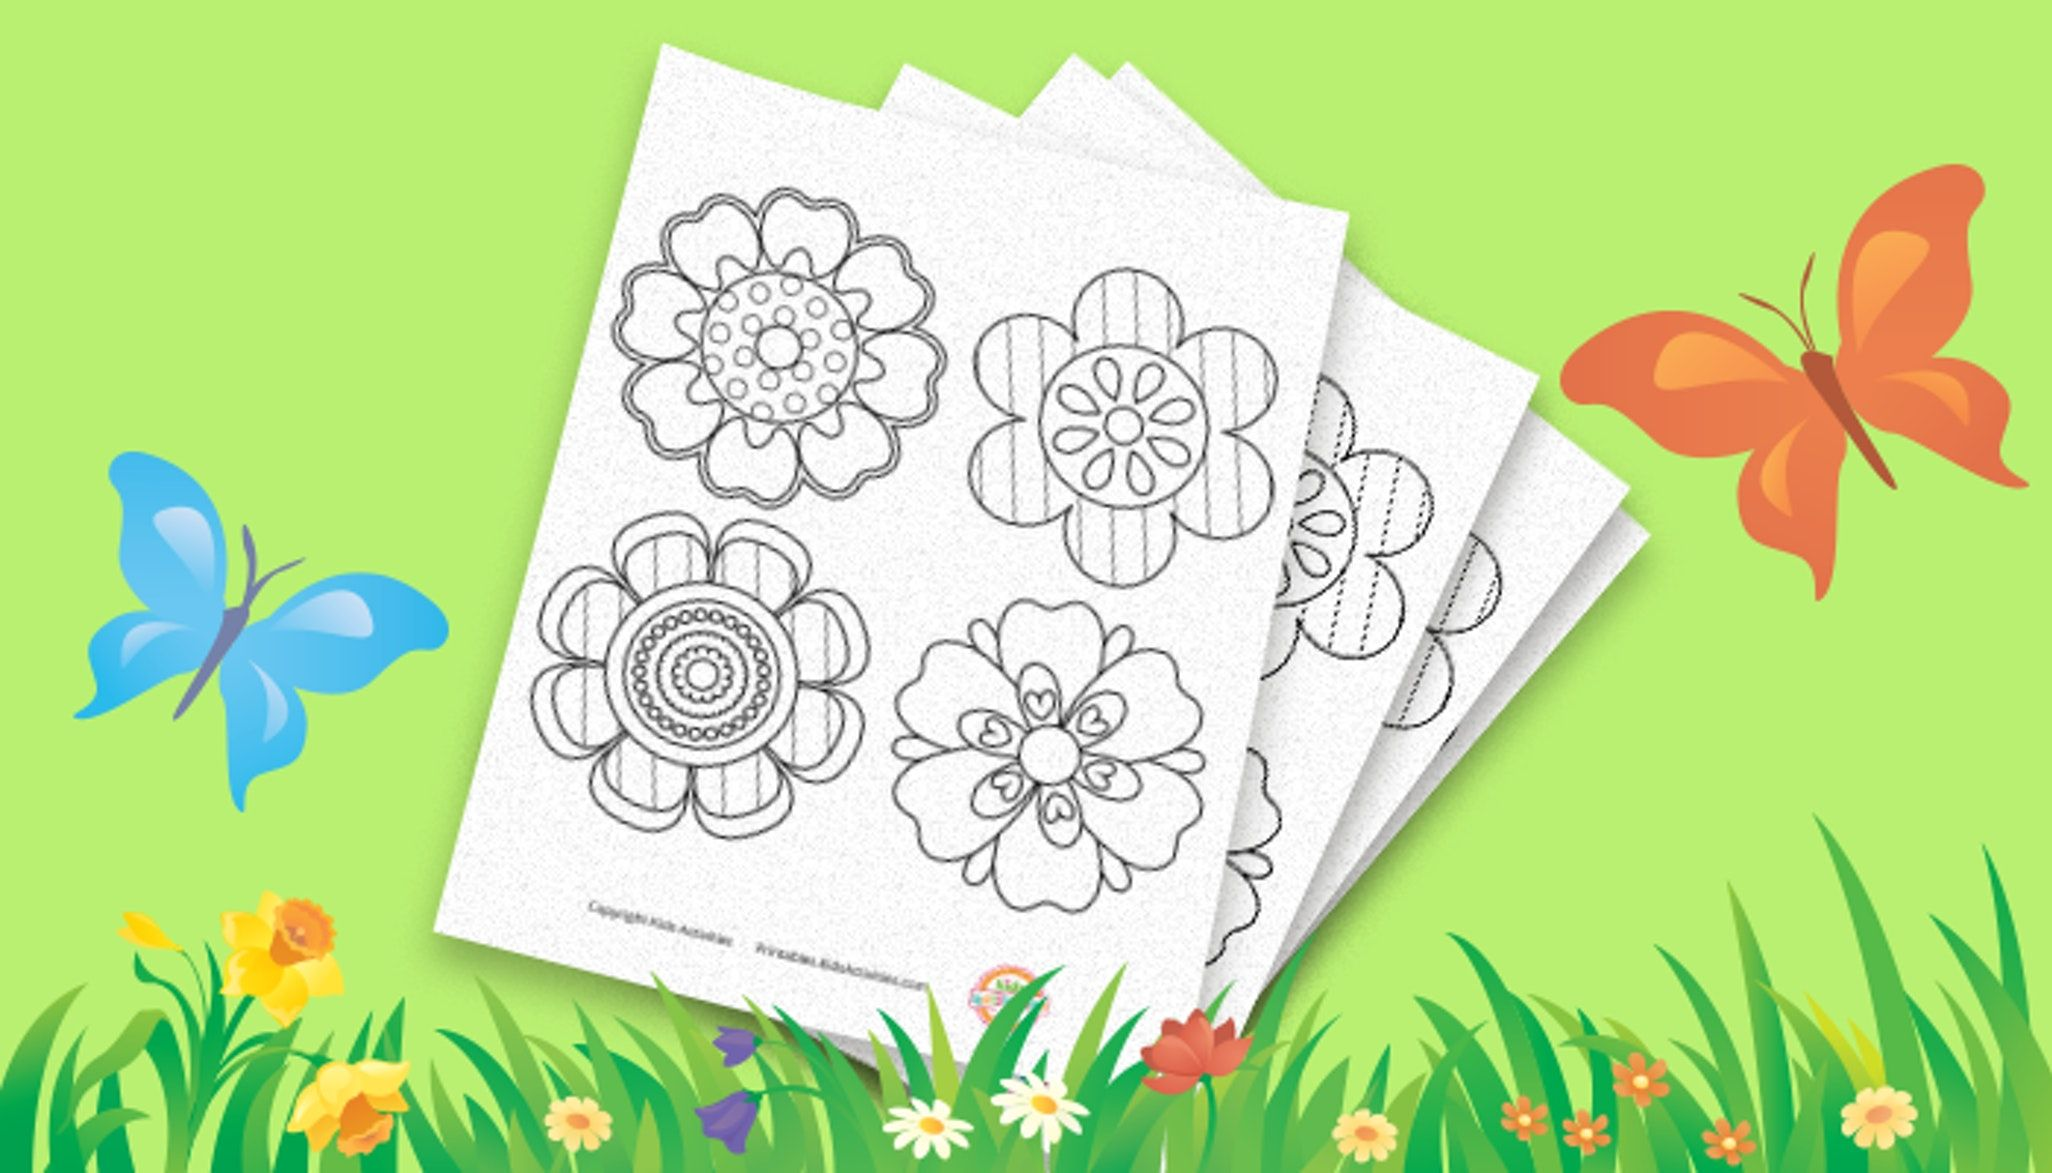 Flower Coloring Page For Spring